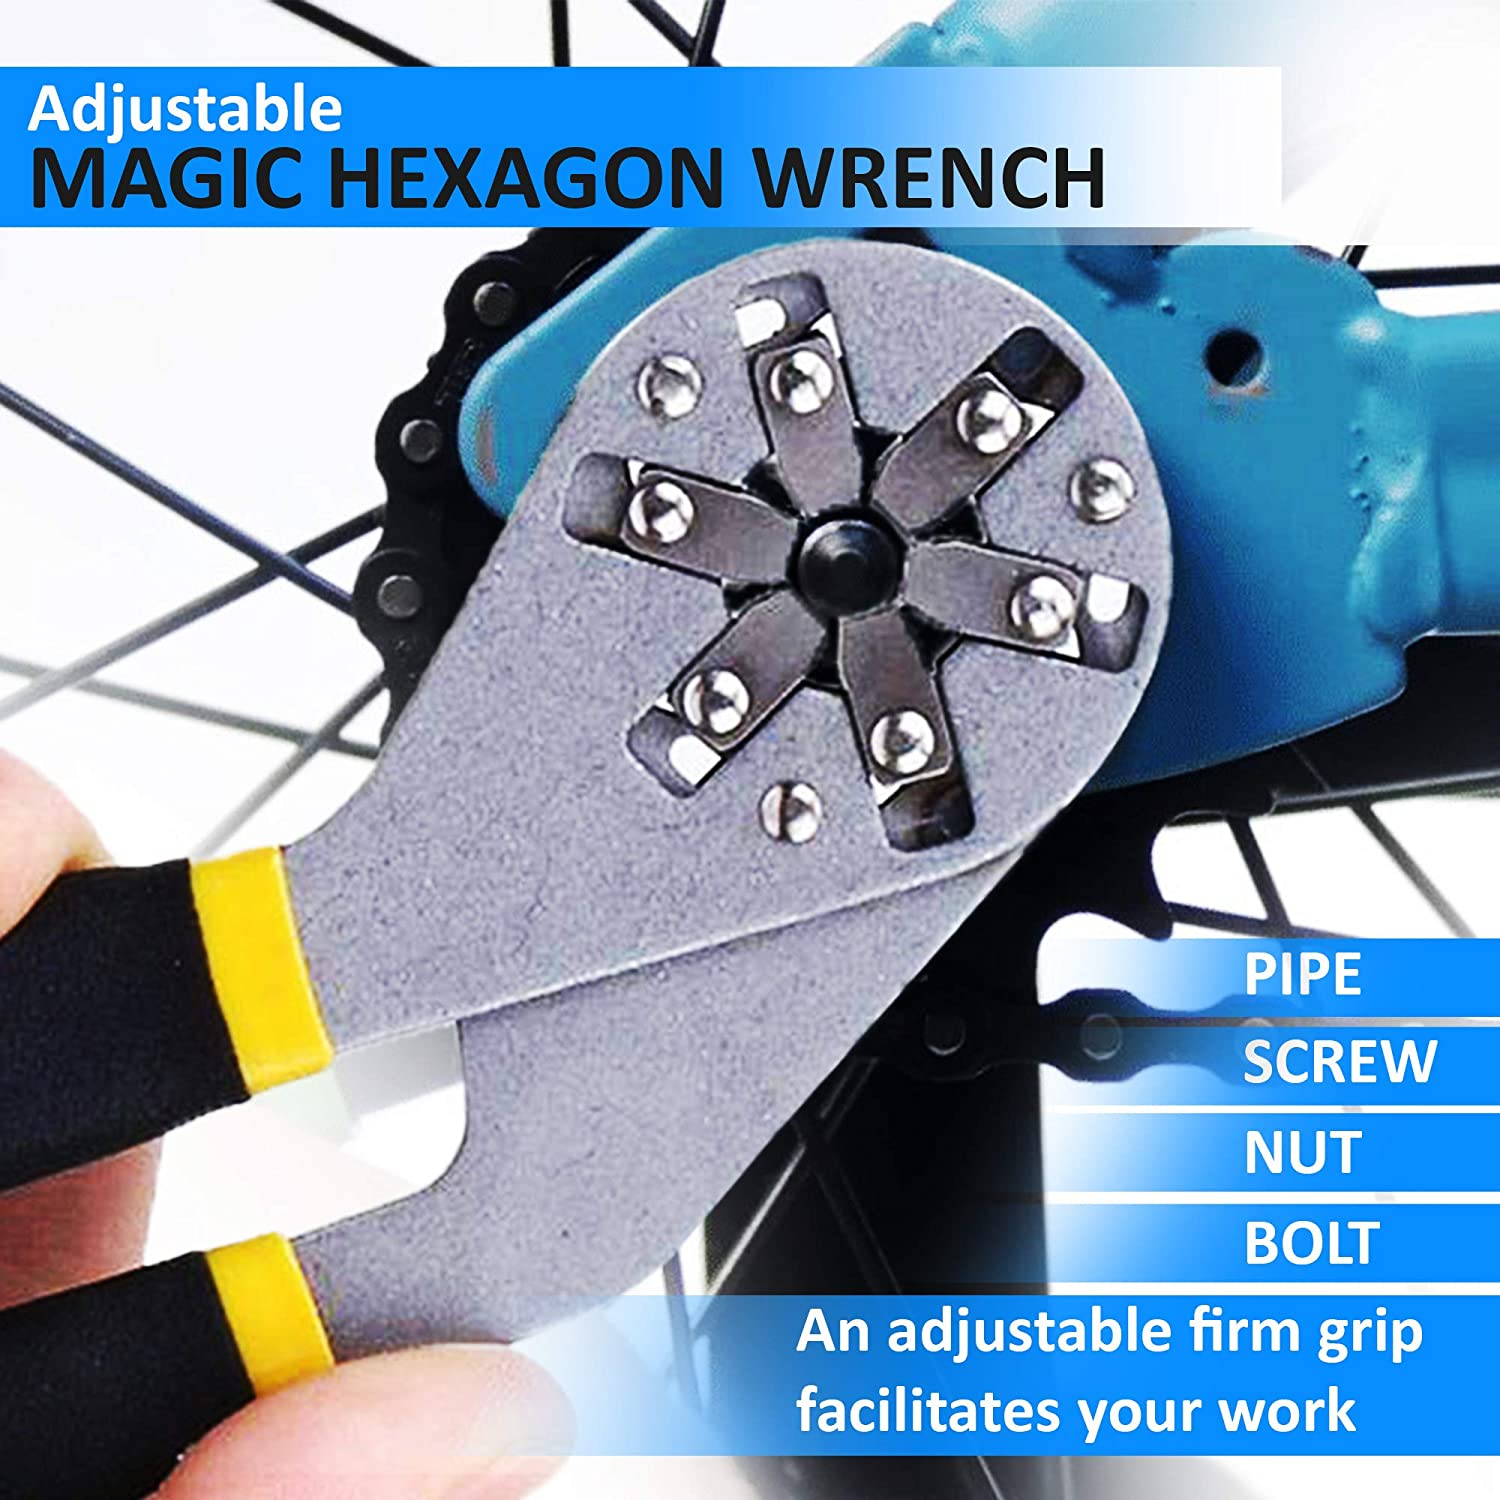 DZT 6 Inch Multi-Function Universal Adjustable Wrench EZgrip Magic Grip Hexagon Spanner Plier to Cover 14 Sizes